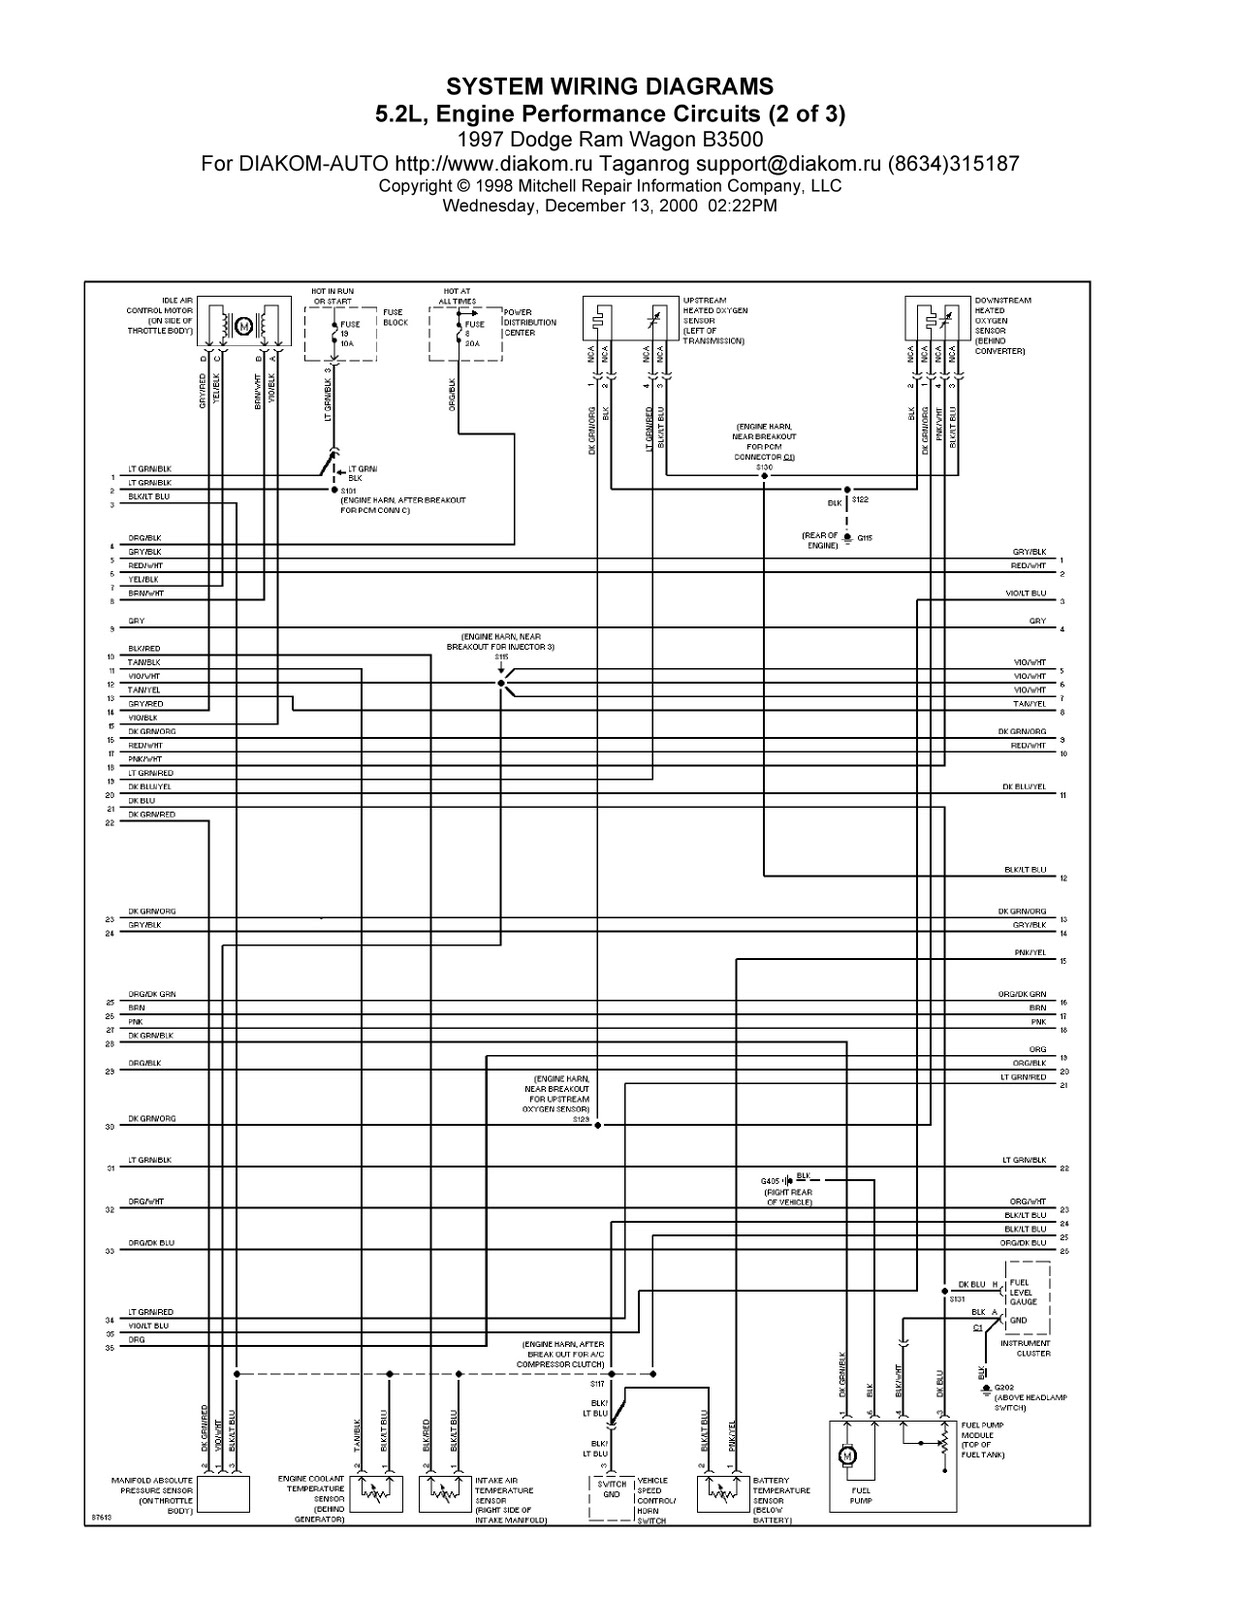 1998 Dodge Ram 3500 Wiring Diagram from 3.bp.blogspot.com